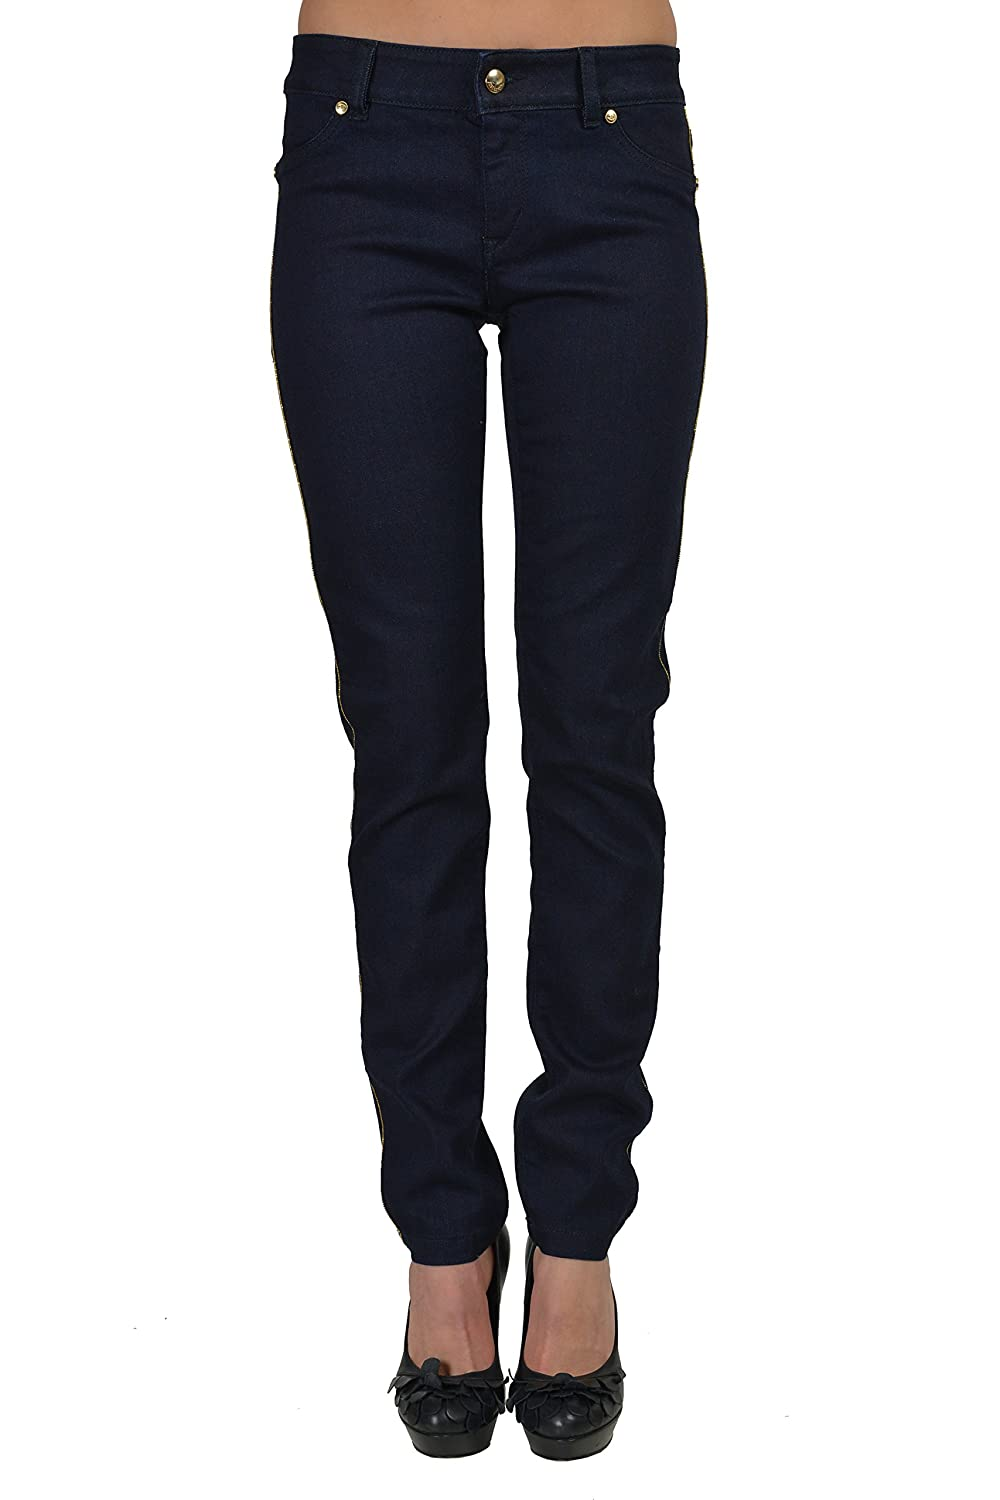 "Just Cavalli ""Chic"" Navy Women's Skinny Jeans US 4 IT 26"